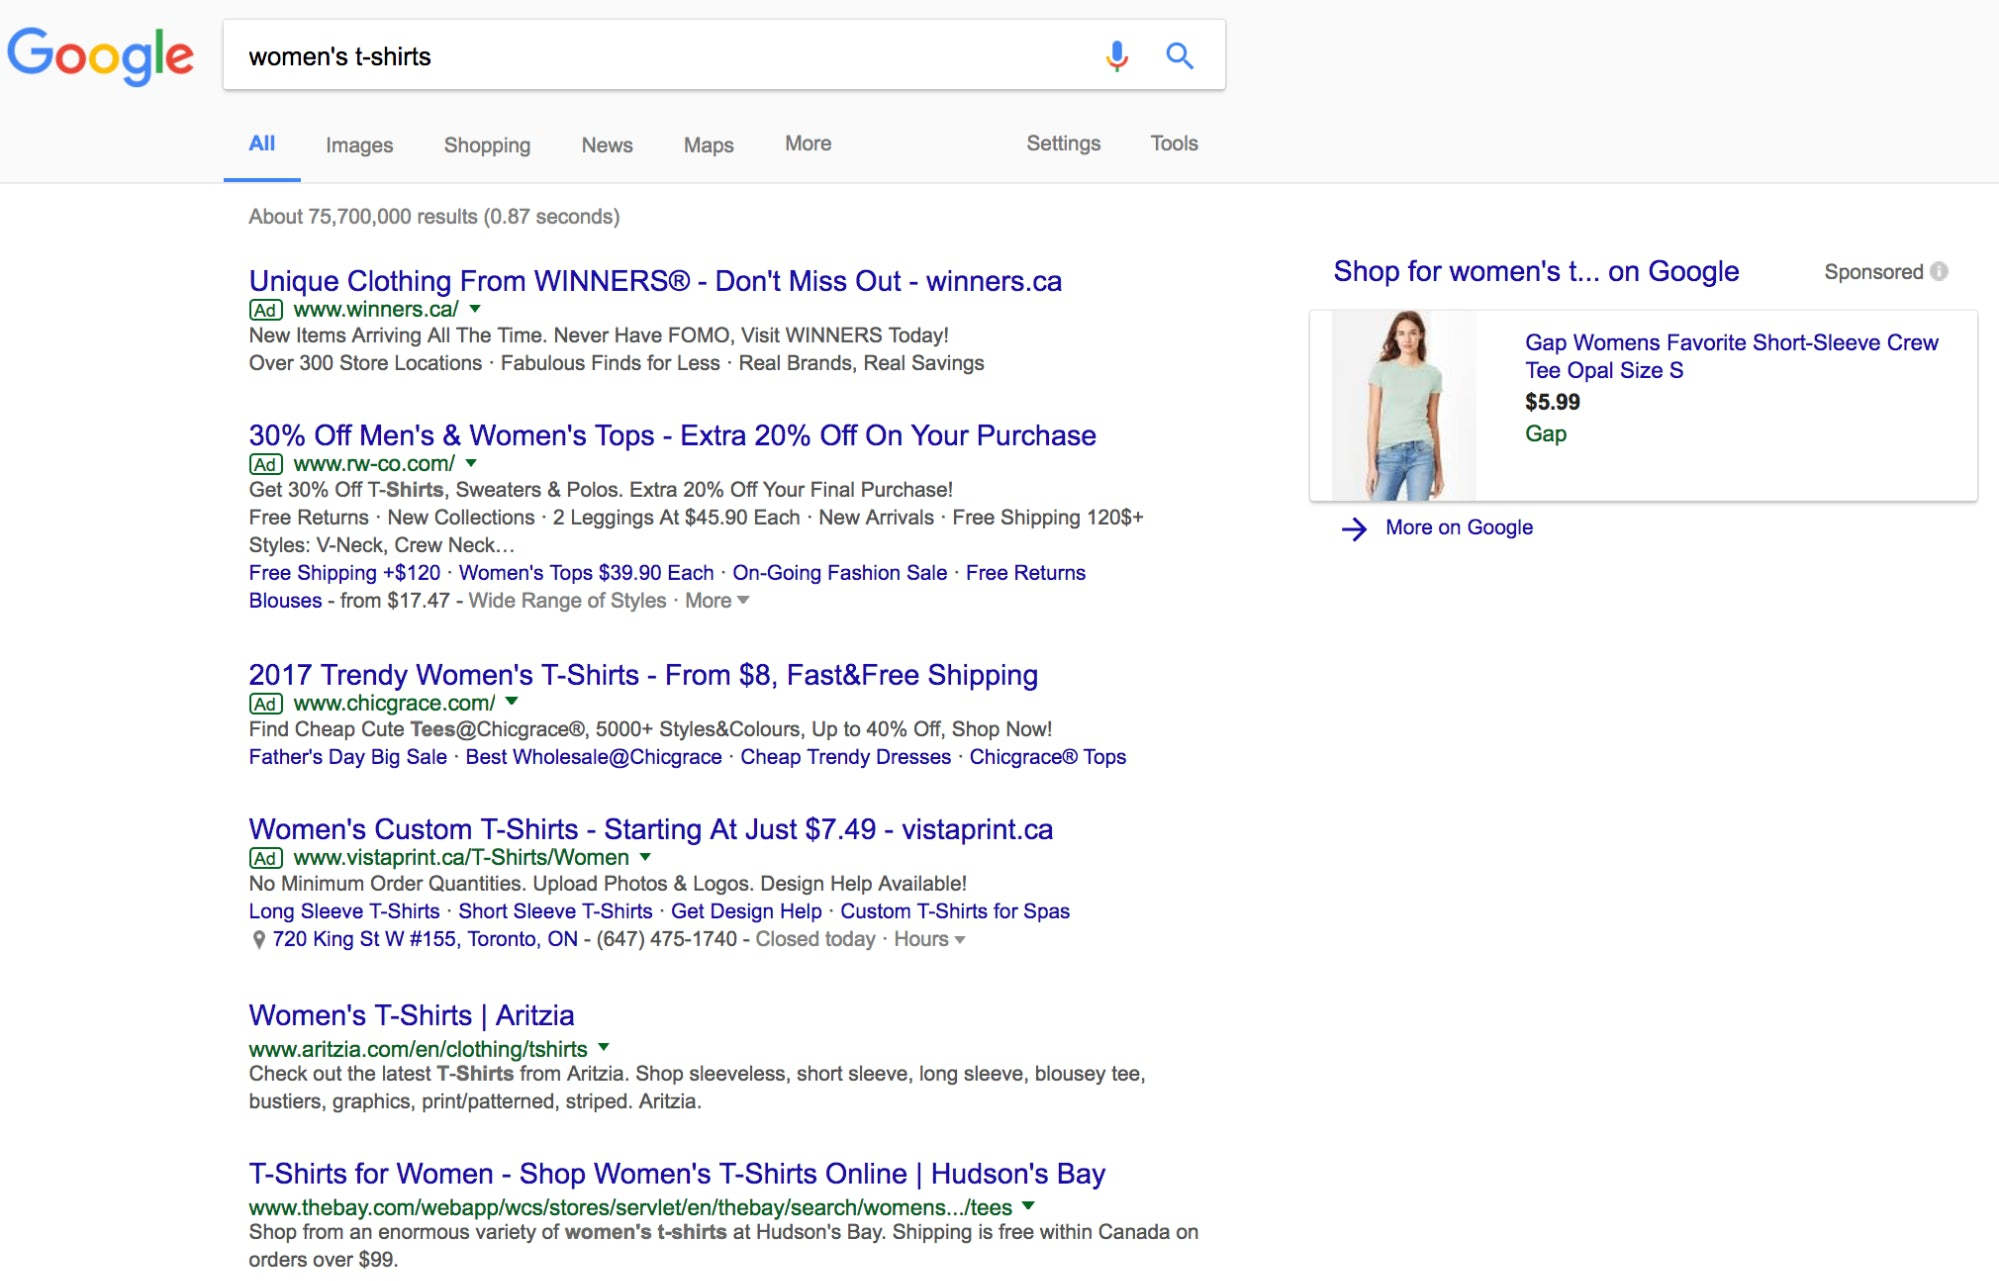 Ecommerce SEO: The Complete Beginner's Guide